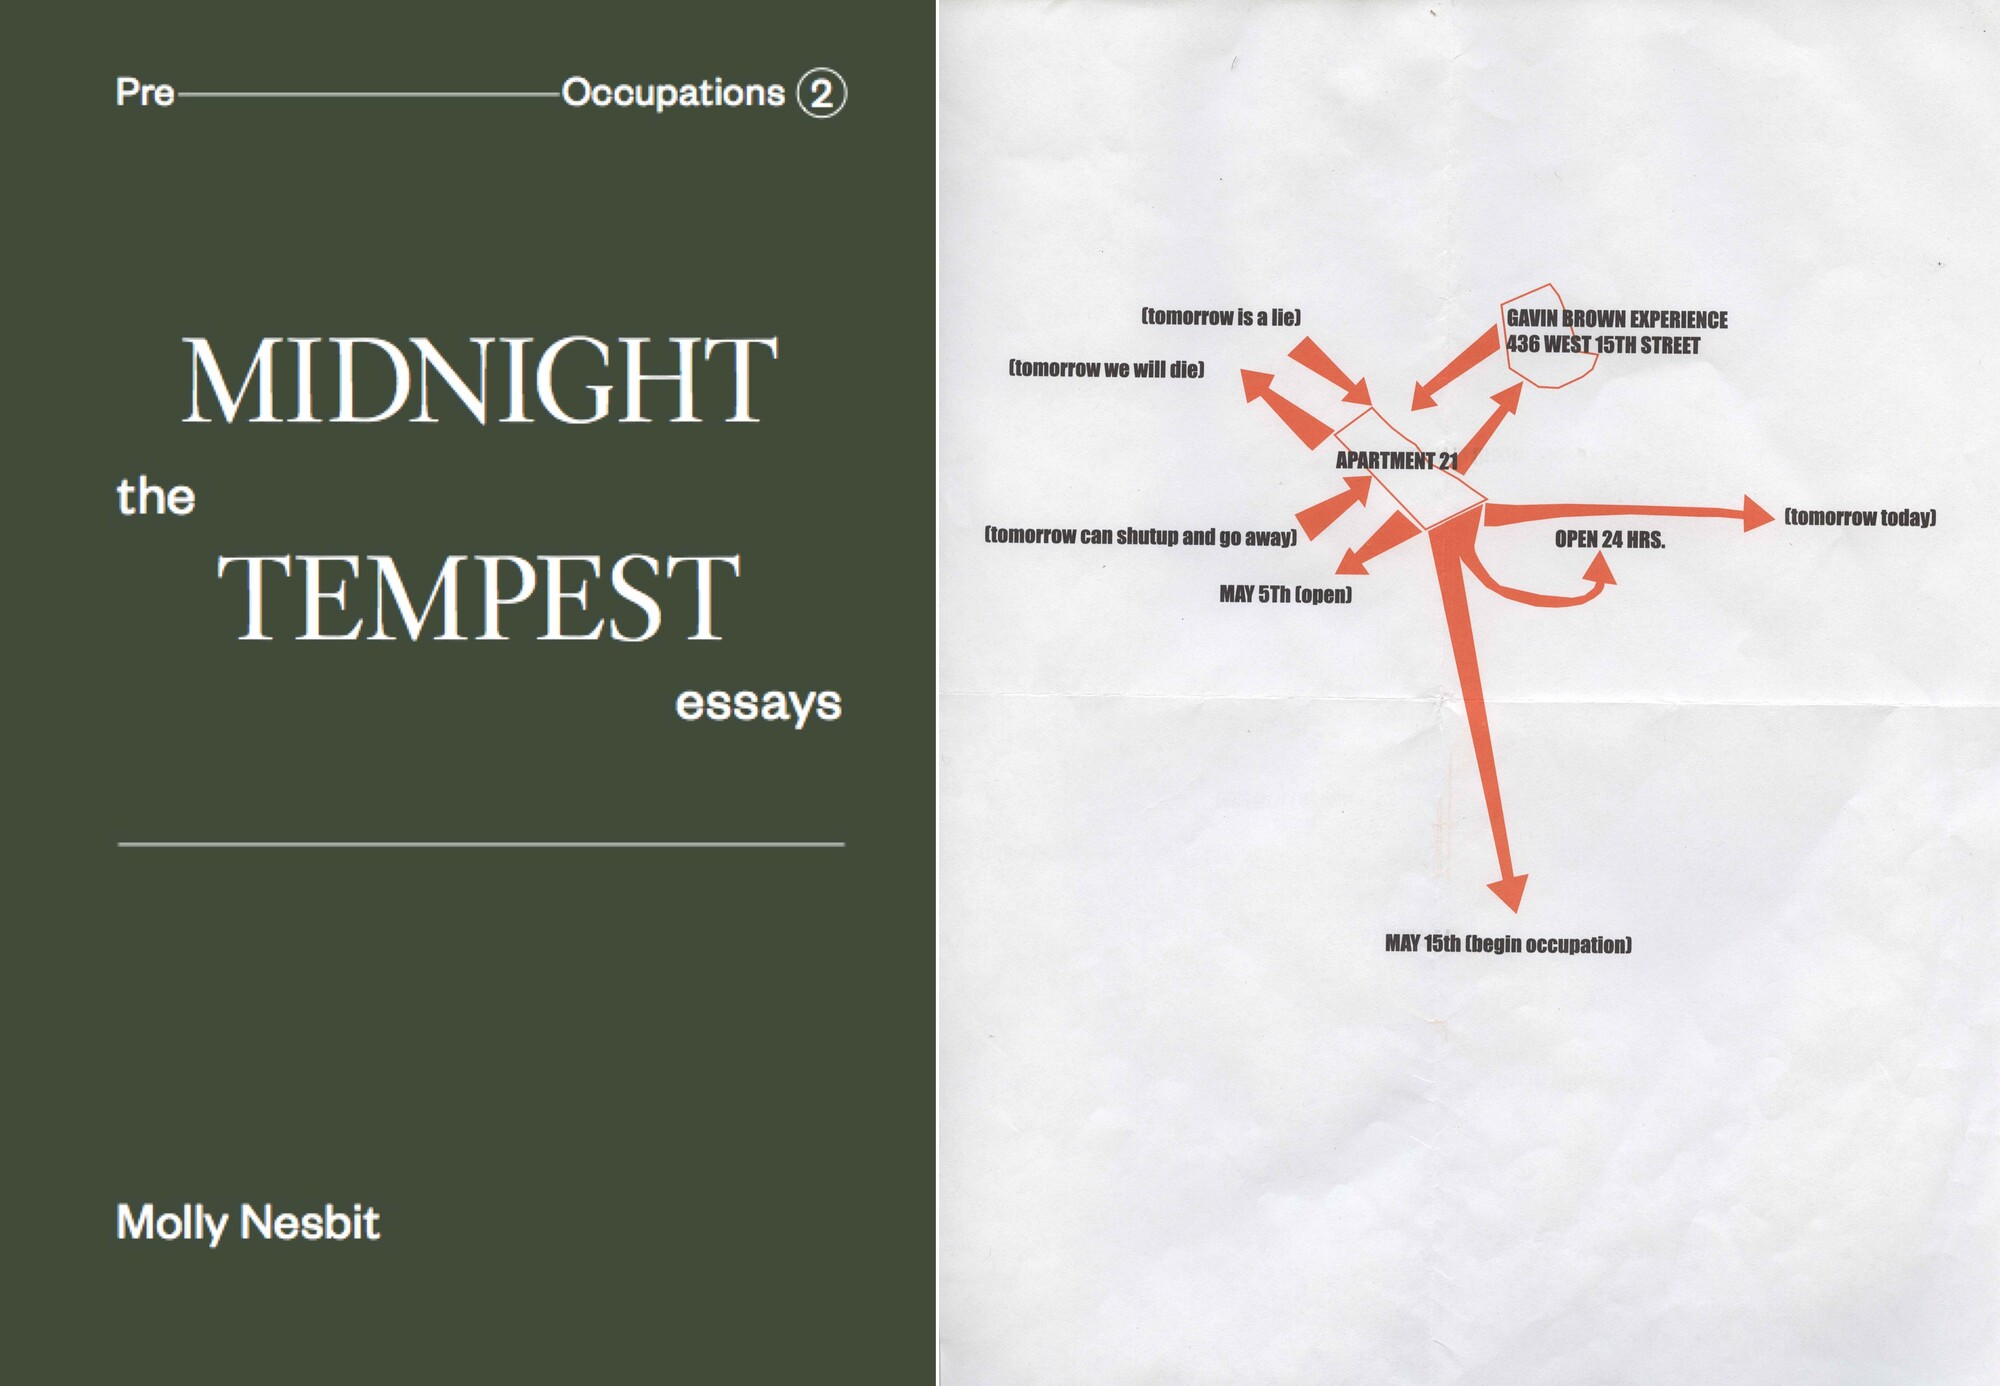 midnight the tempest essays The tempest excerpt and sample close reading questions text from the tempest sample close reading/  thou call'dst me up at midnight to fetch dew.